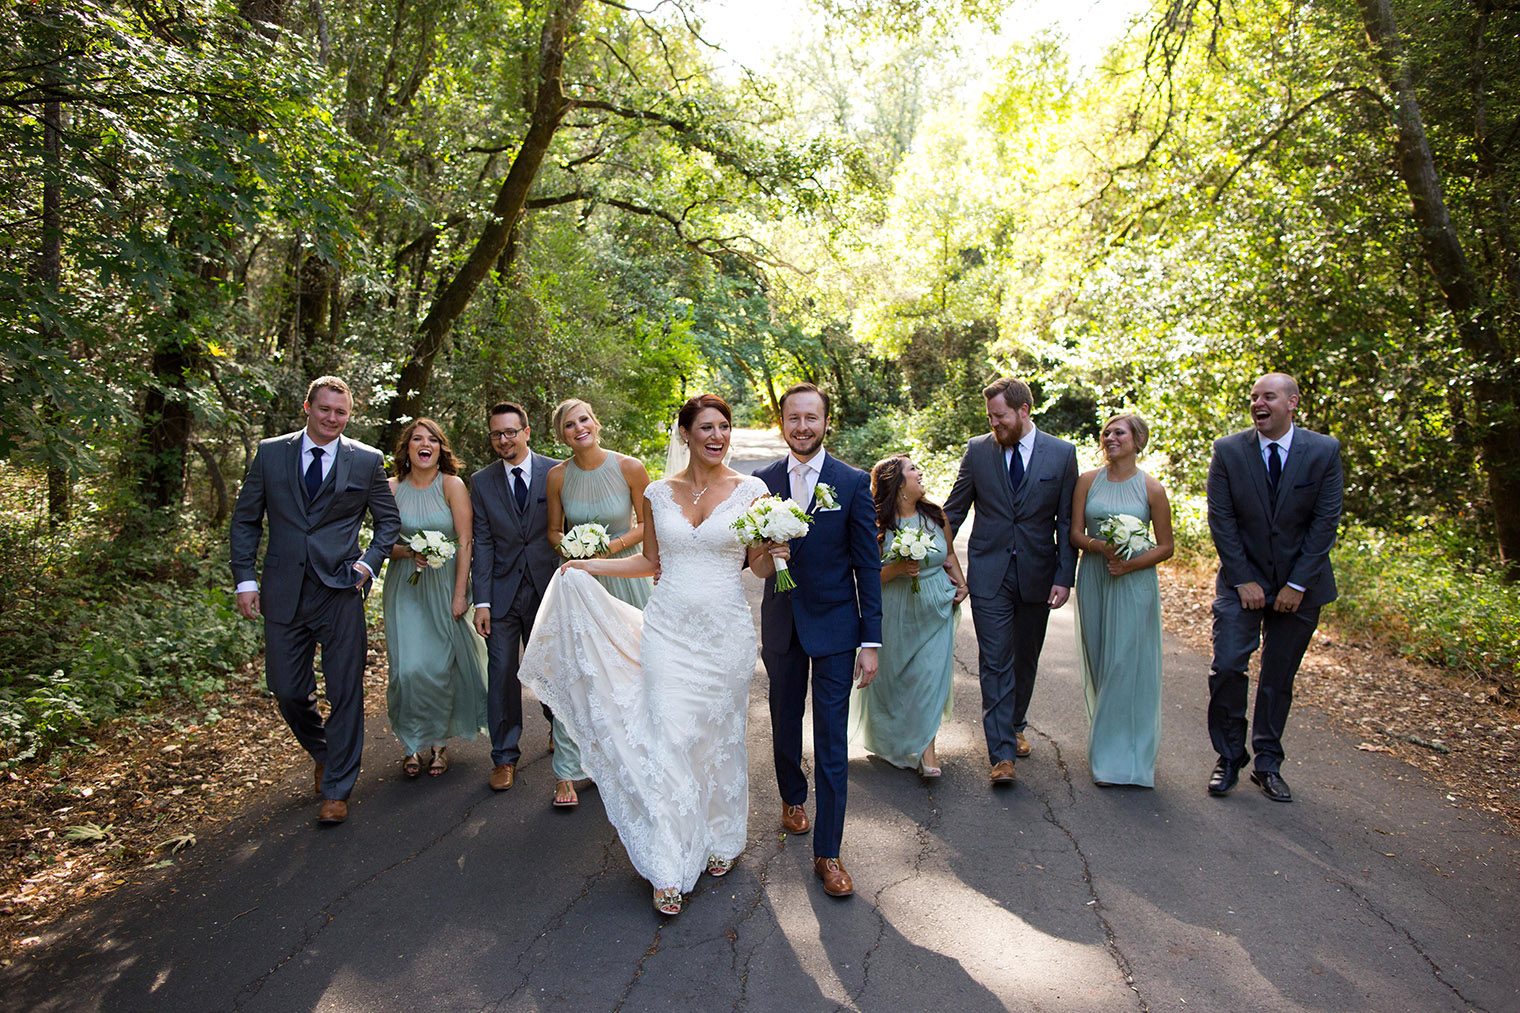 Wedding Photos in Santa Rosa